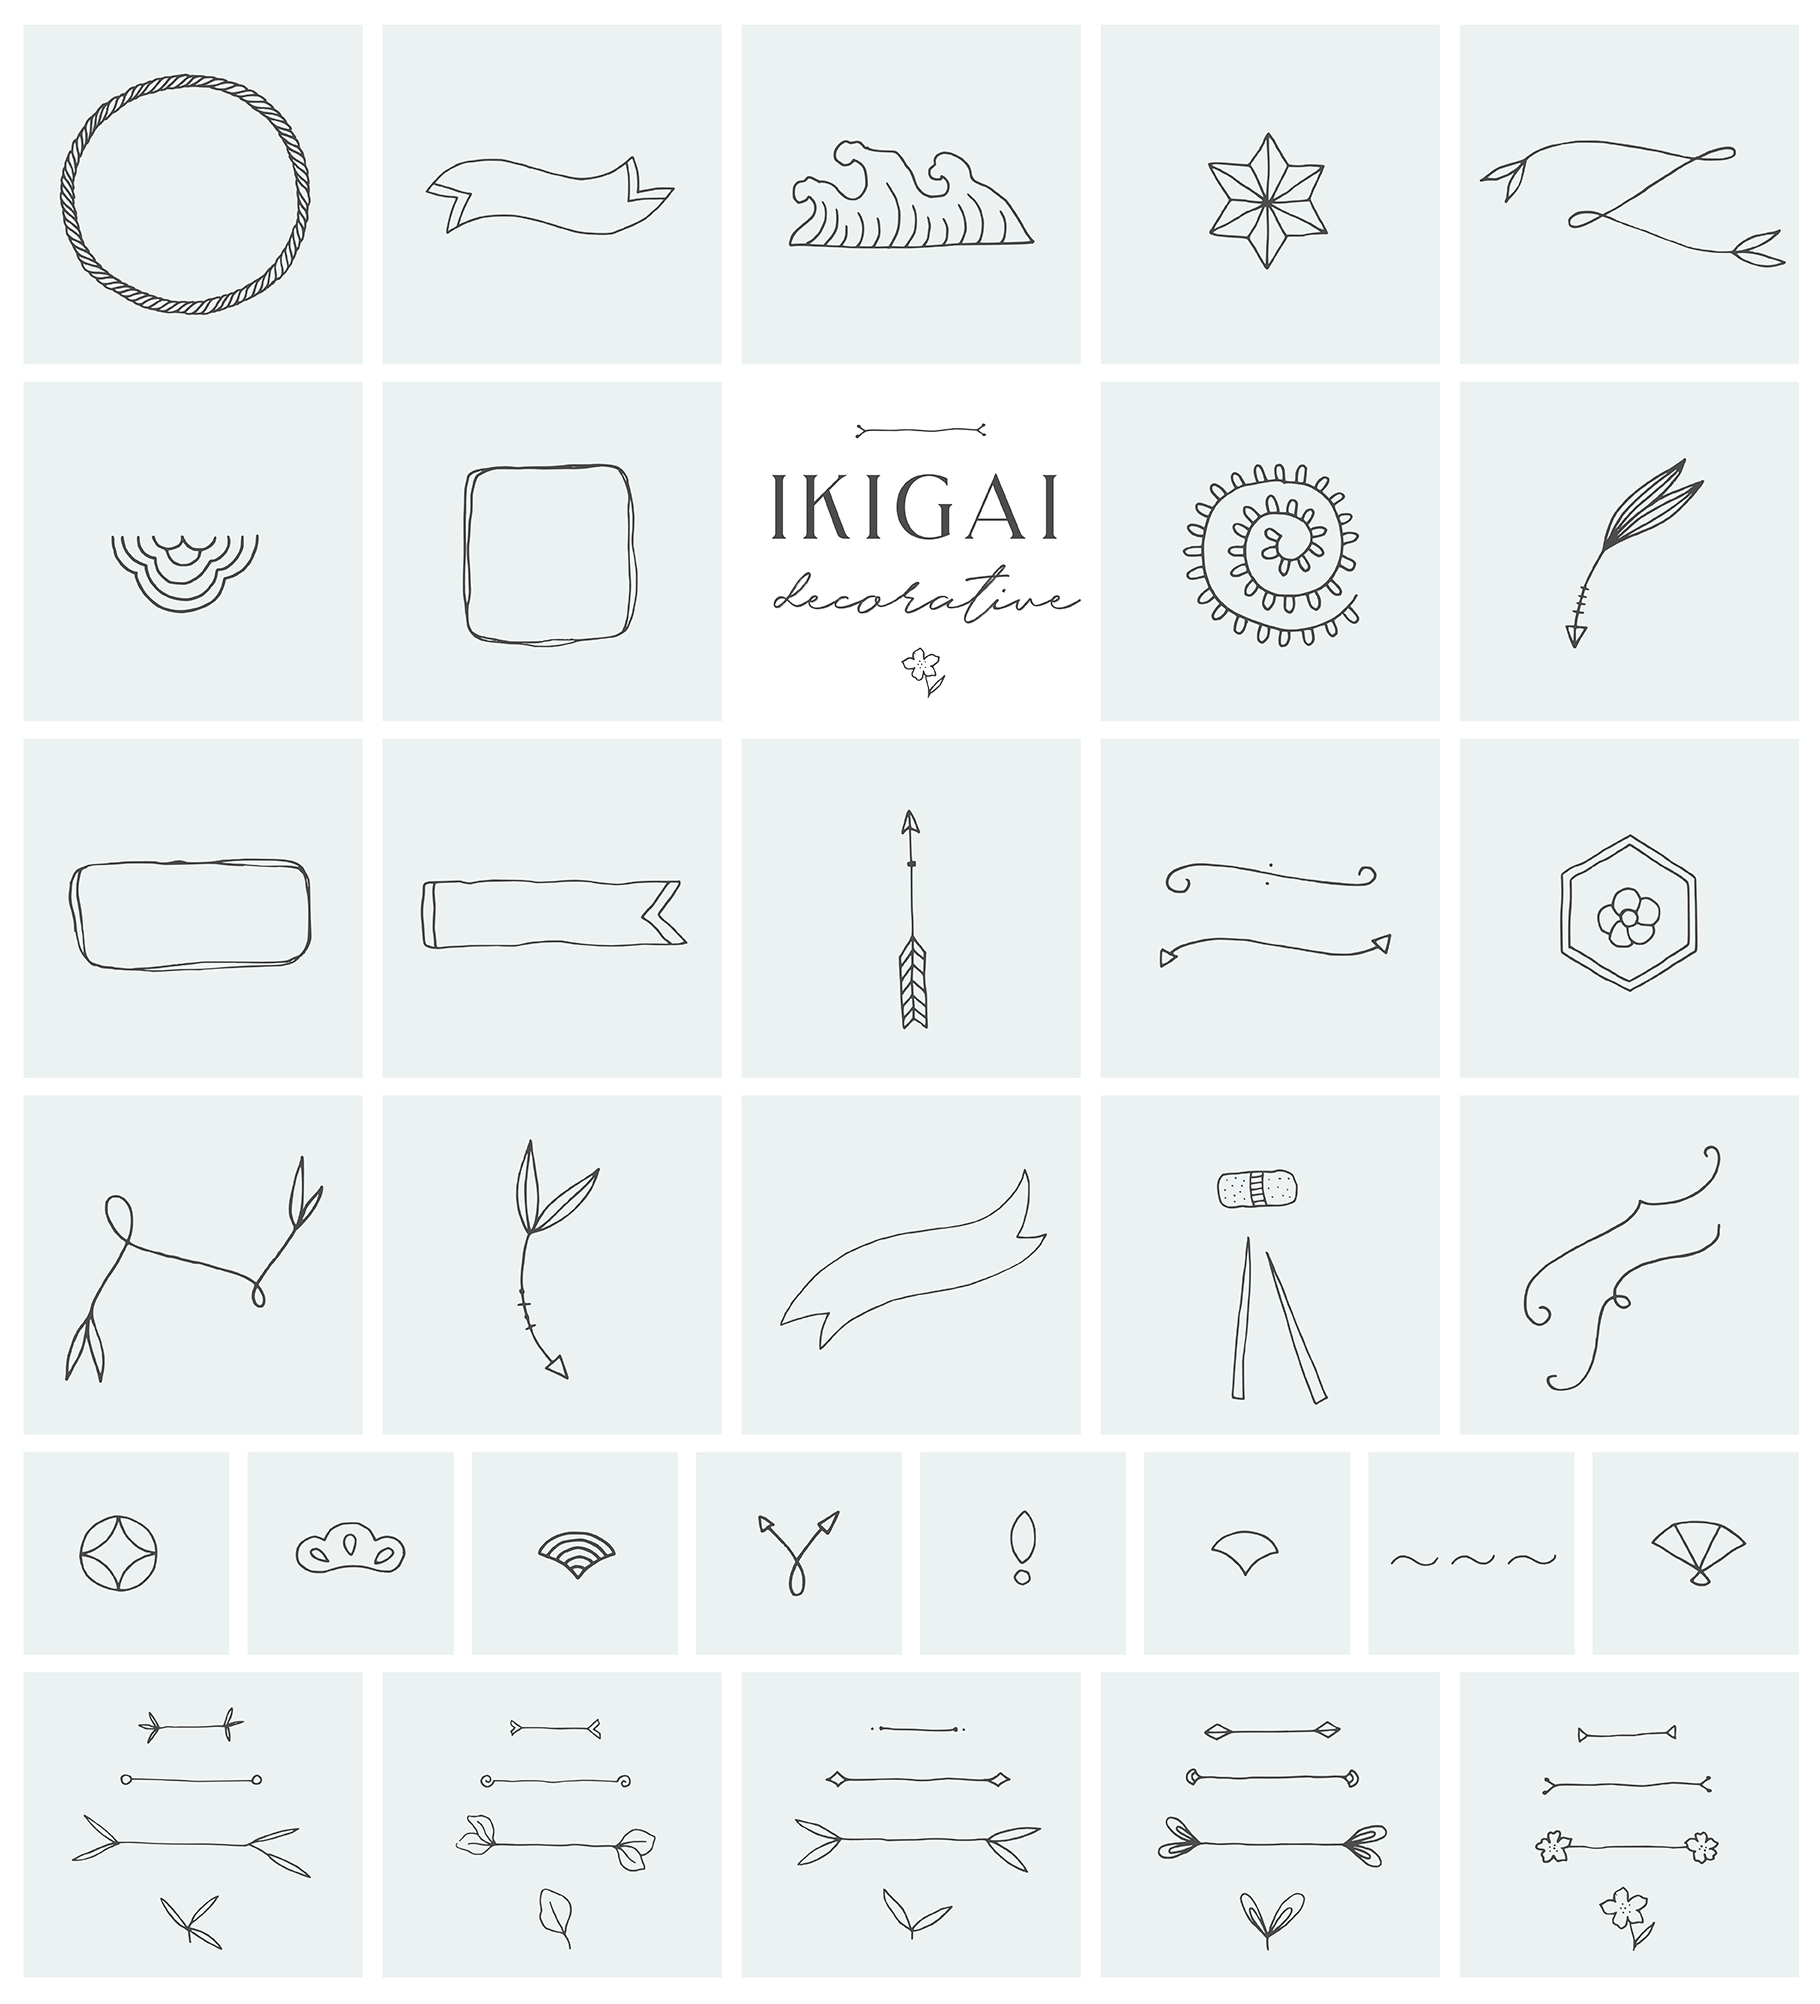 Ikigai Japanese Logo and Branding Collection